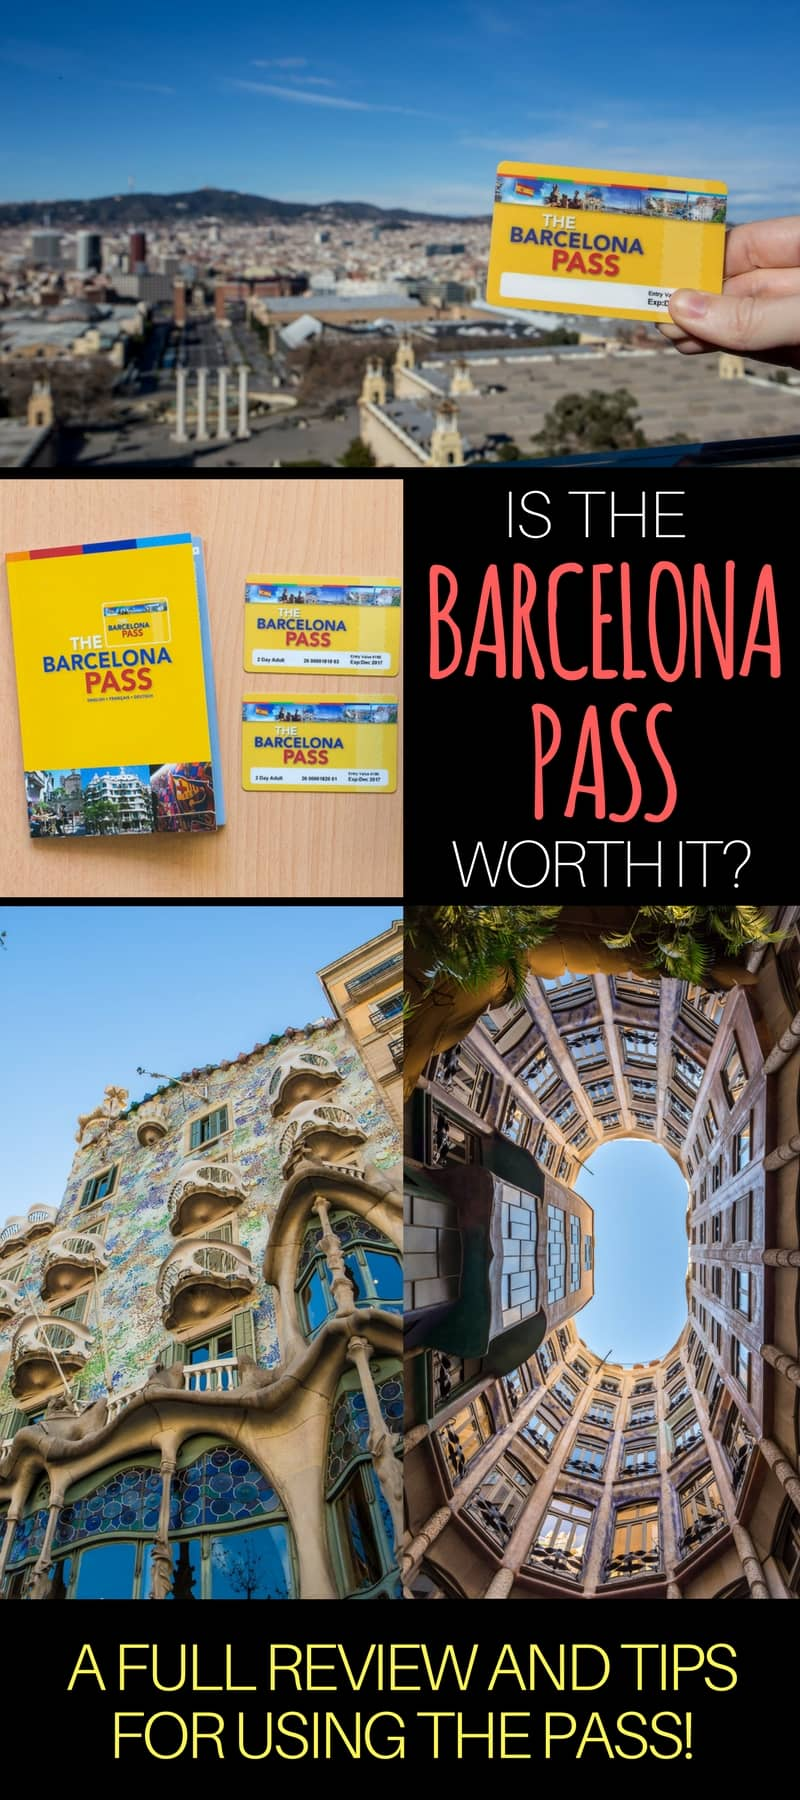 Tips for buying & using the Go Barcelona Pass, as well as how to calculate if the Go Barcelona Pass is worth it for your trip to Barcelona Spain. Also loads of advice to help you plan your trip to Barcelona.